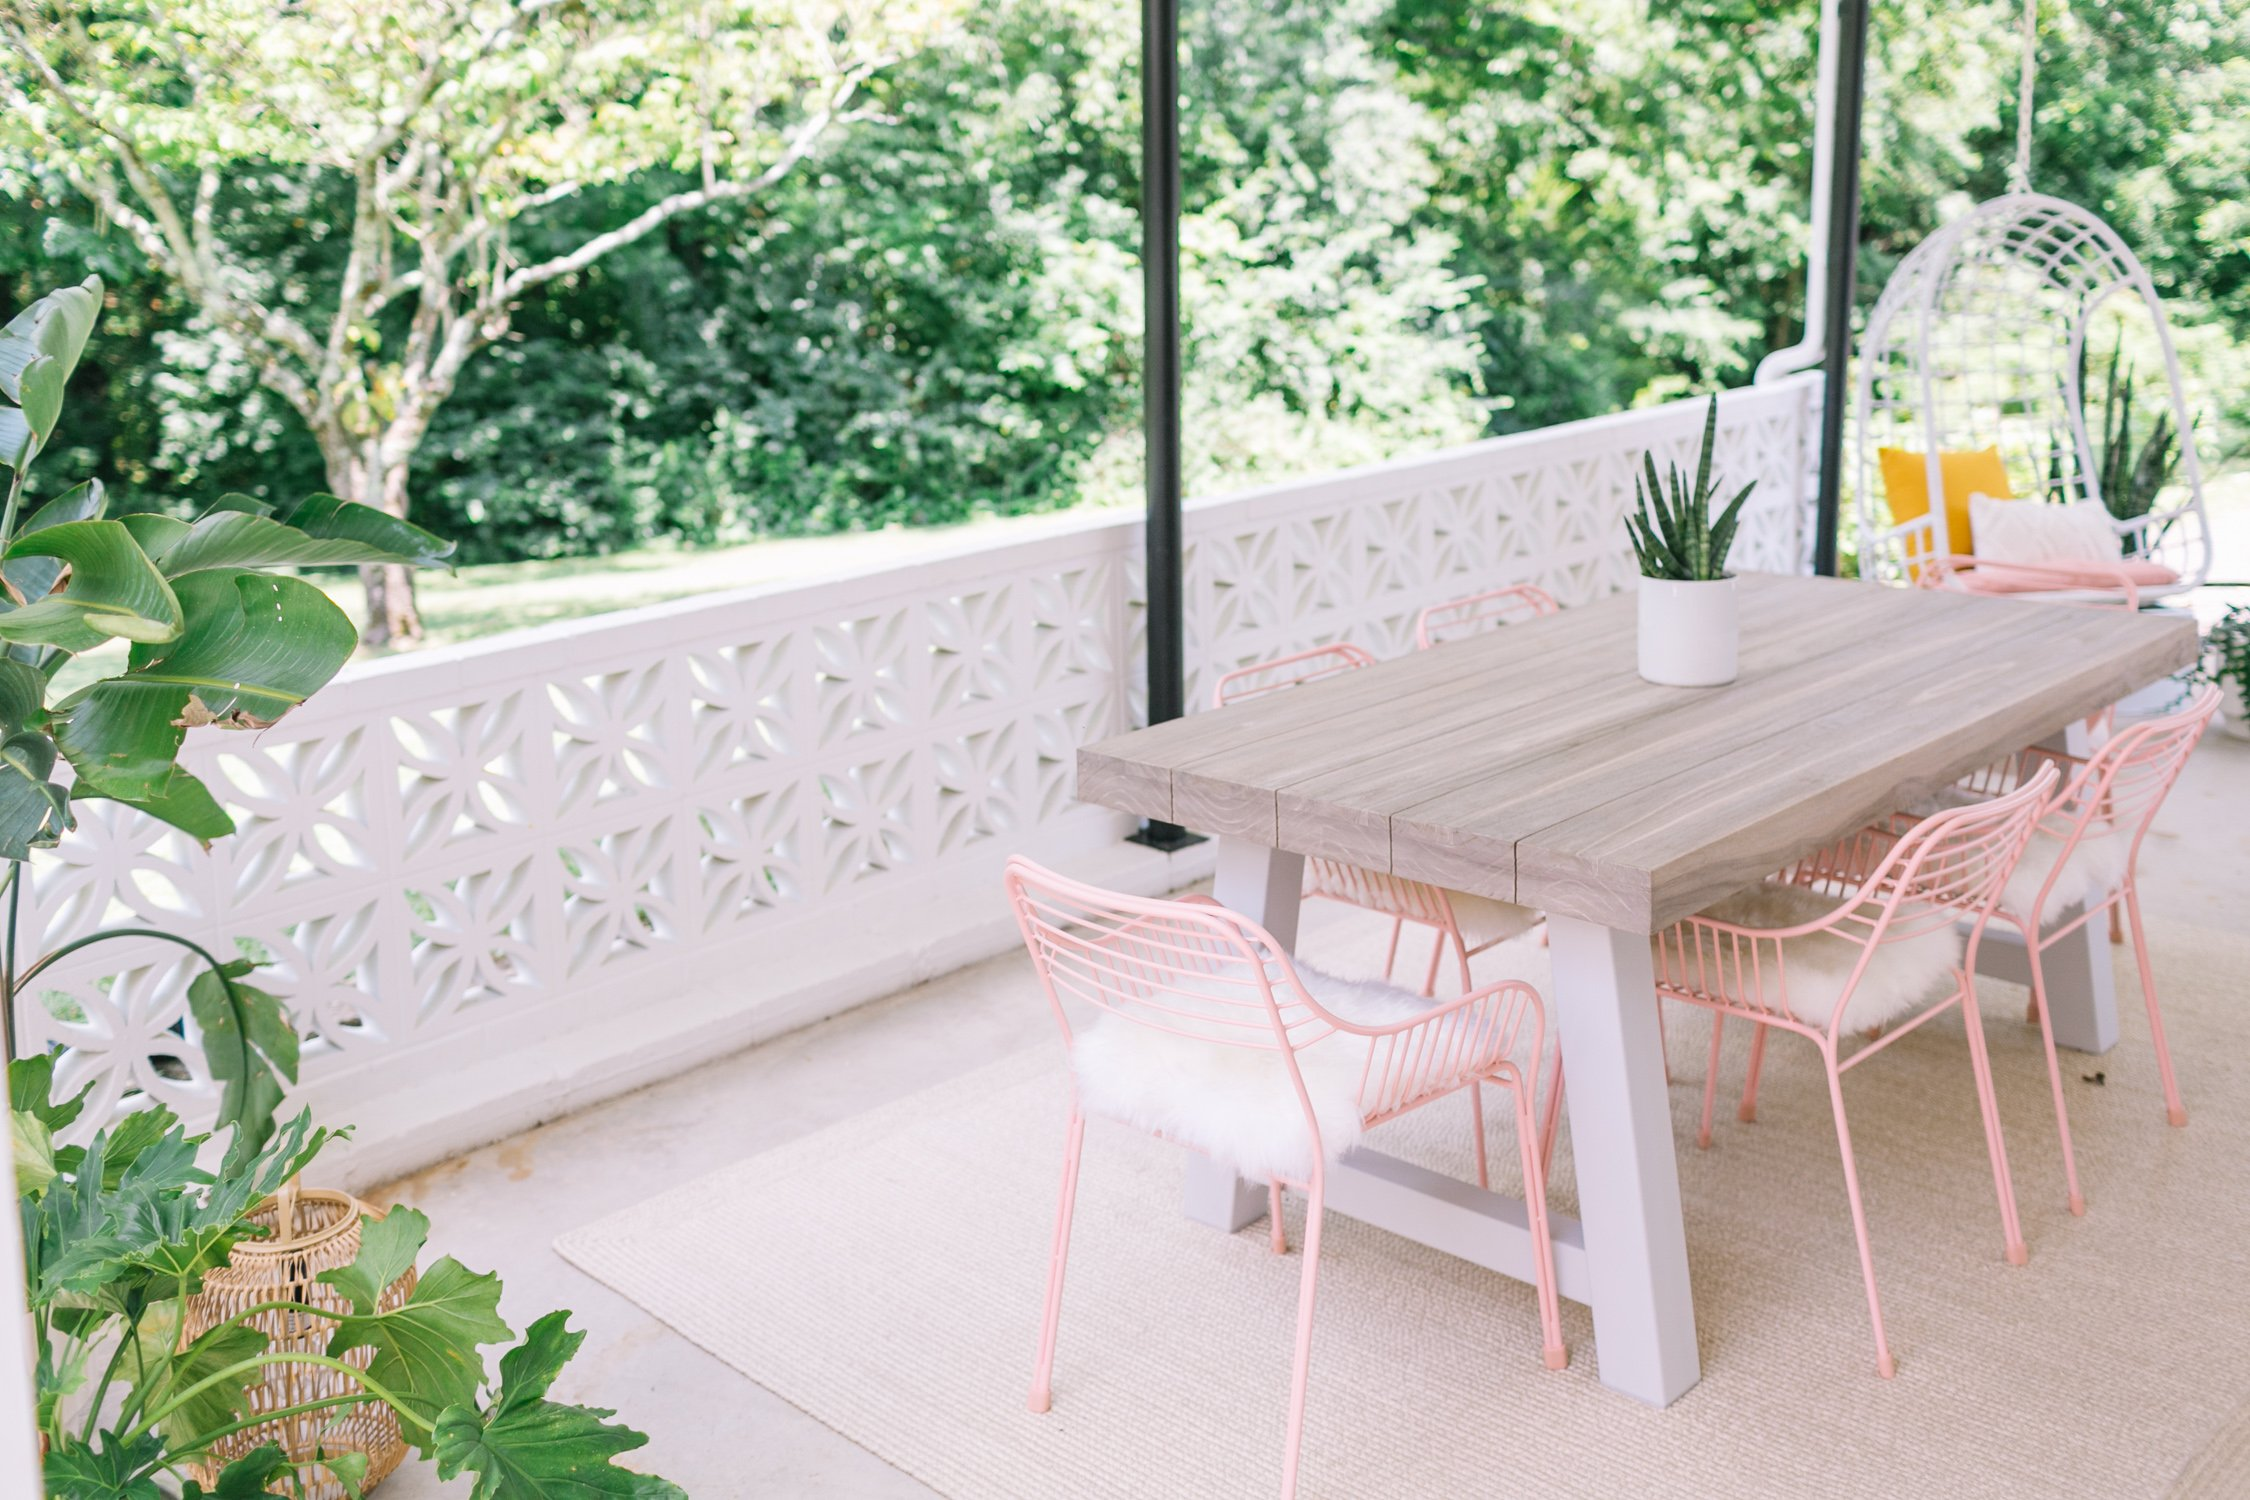 My Feedly How I Turned My Carport Into An Outdoor Porch